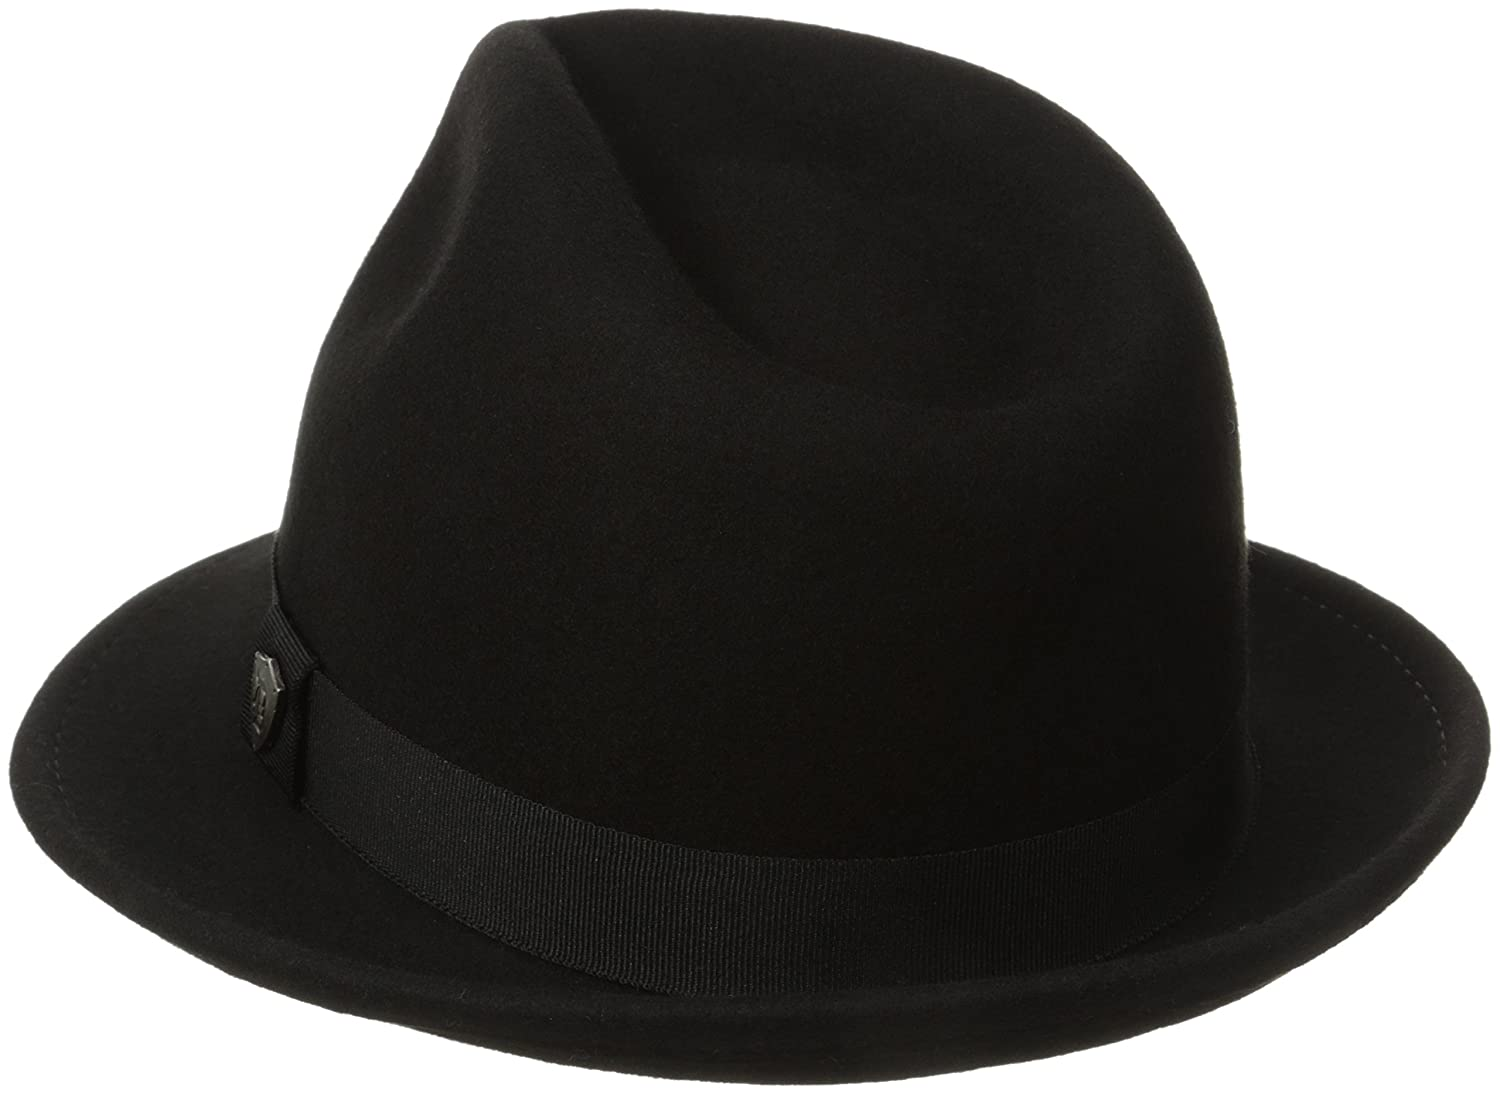 1940s Mens Hat Styles and History Dorfman Wool Felt Hat $44.95 AT vintagedancer.com